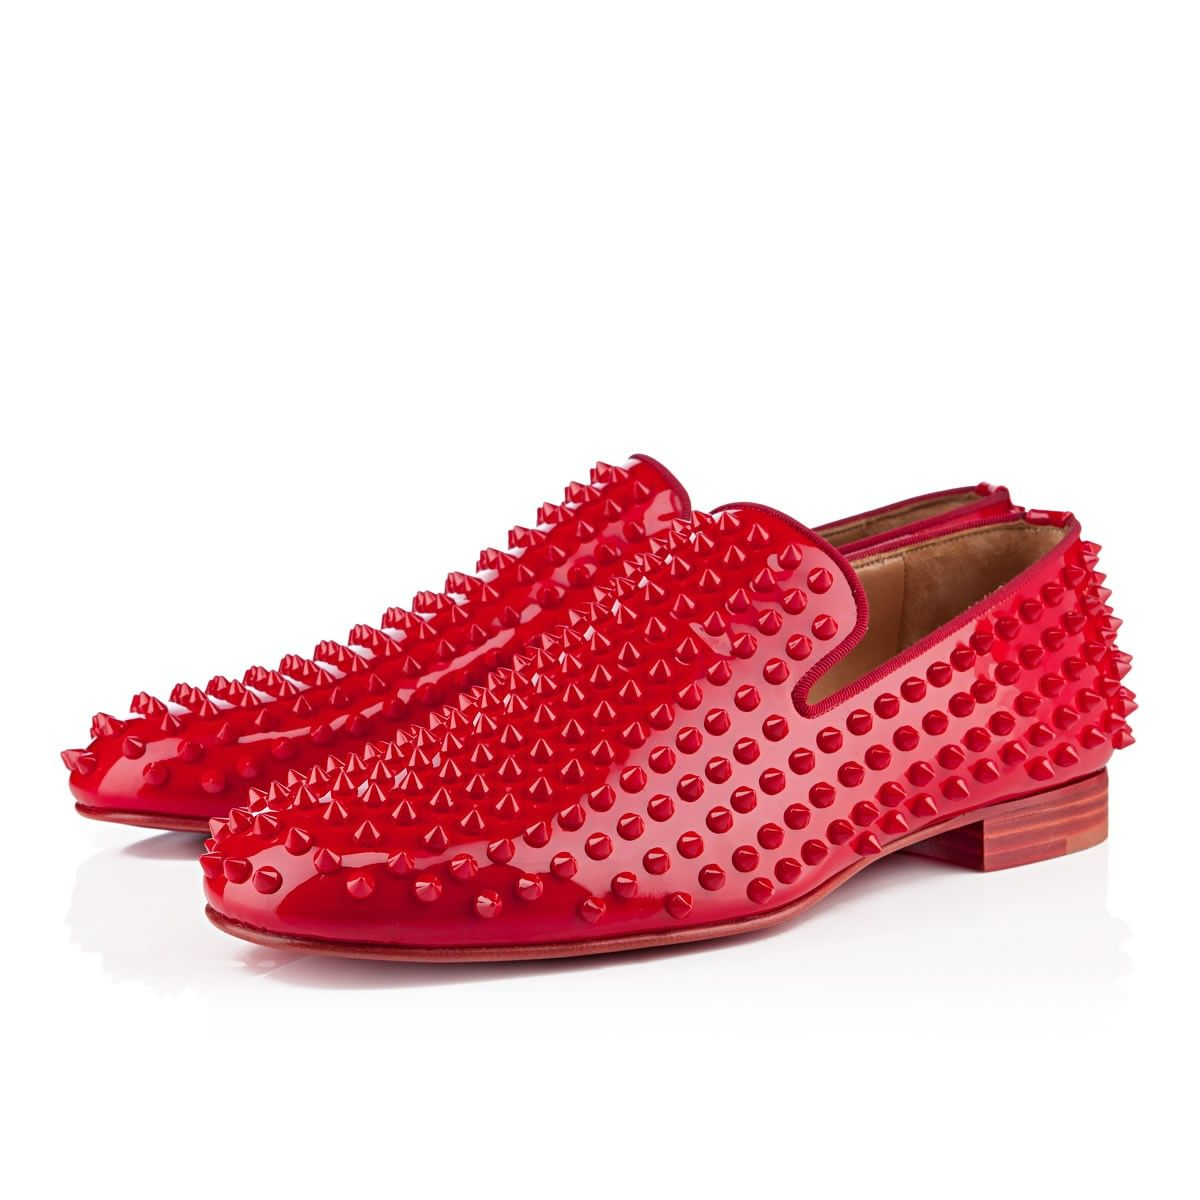 8be8c984f24 boy what i wouldn't give to for a pair of these Louboutin ROLLERBOY ...